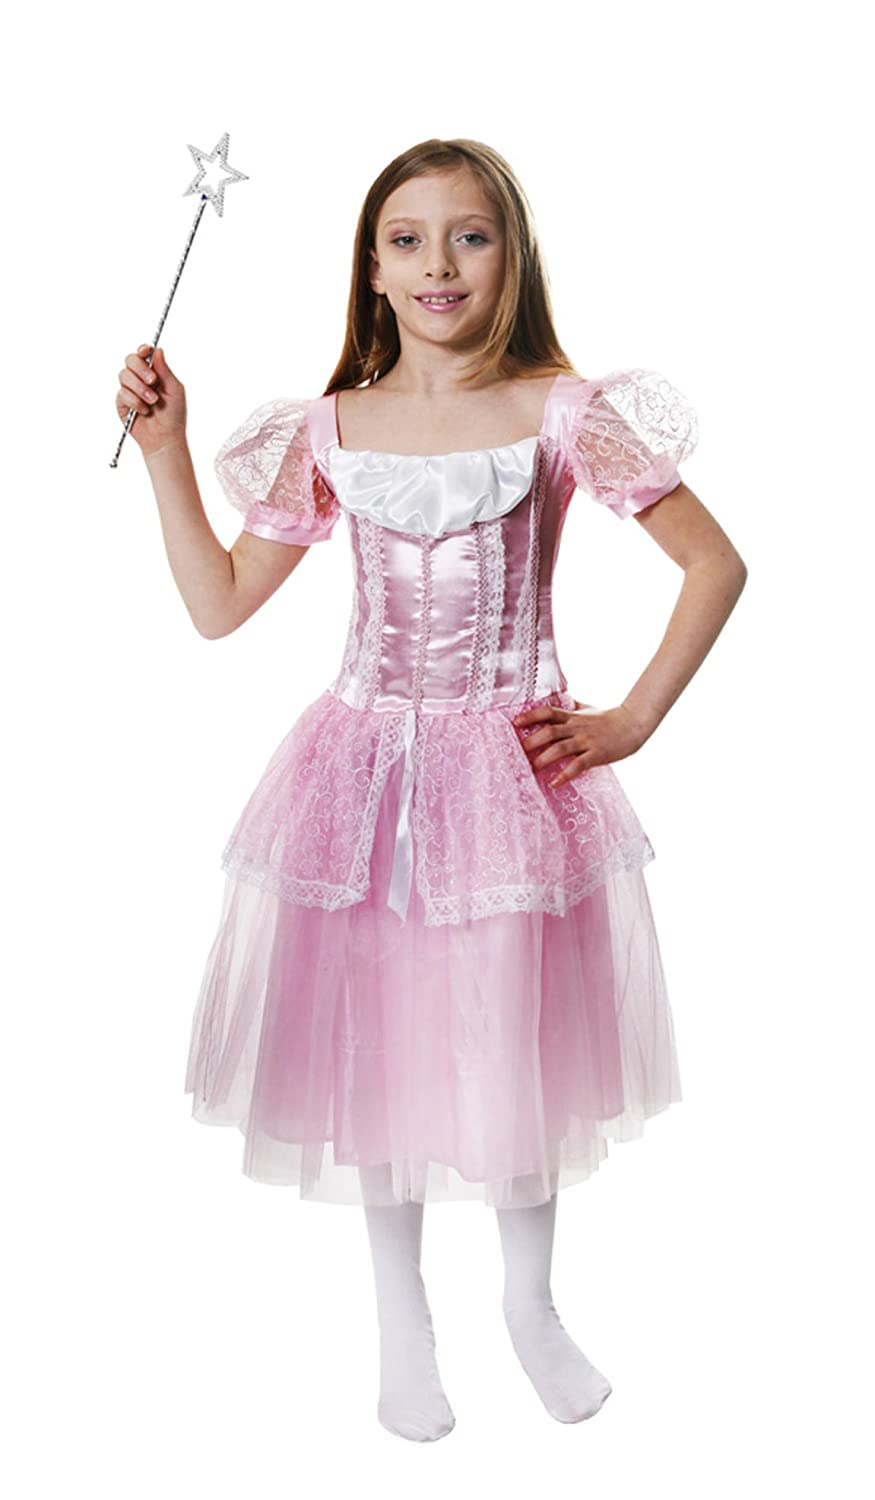 Girls Pink Princess Fancy Dress Costume Age 4-6: Amazon.co.uk: Toys ...